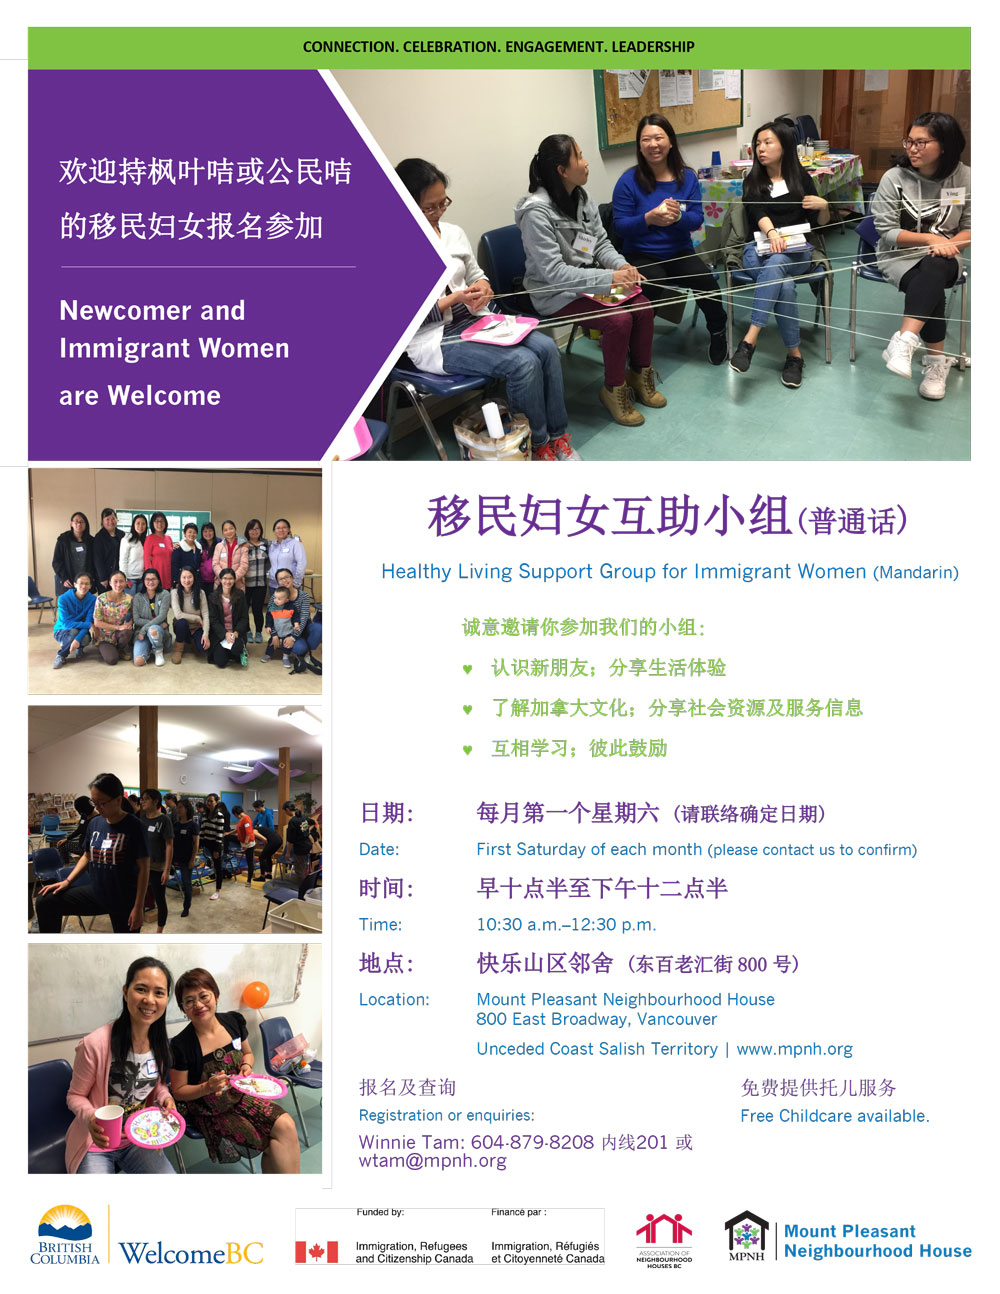 A poster with images of Chinese women participating in activities together, including meidtation, circle time, and enjoying refreshments.